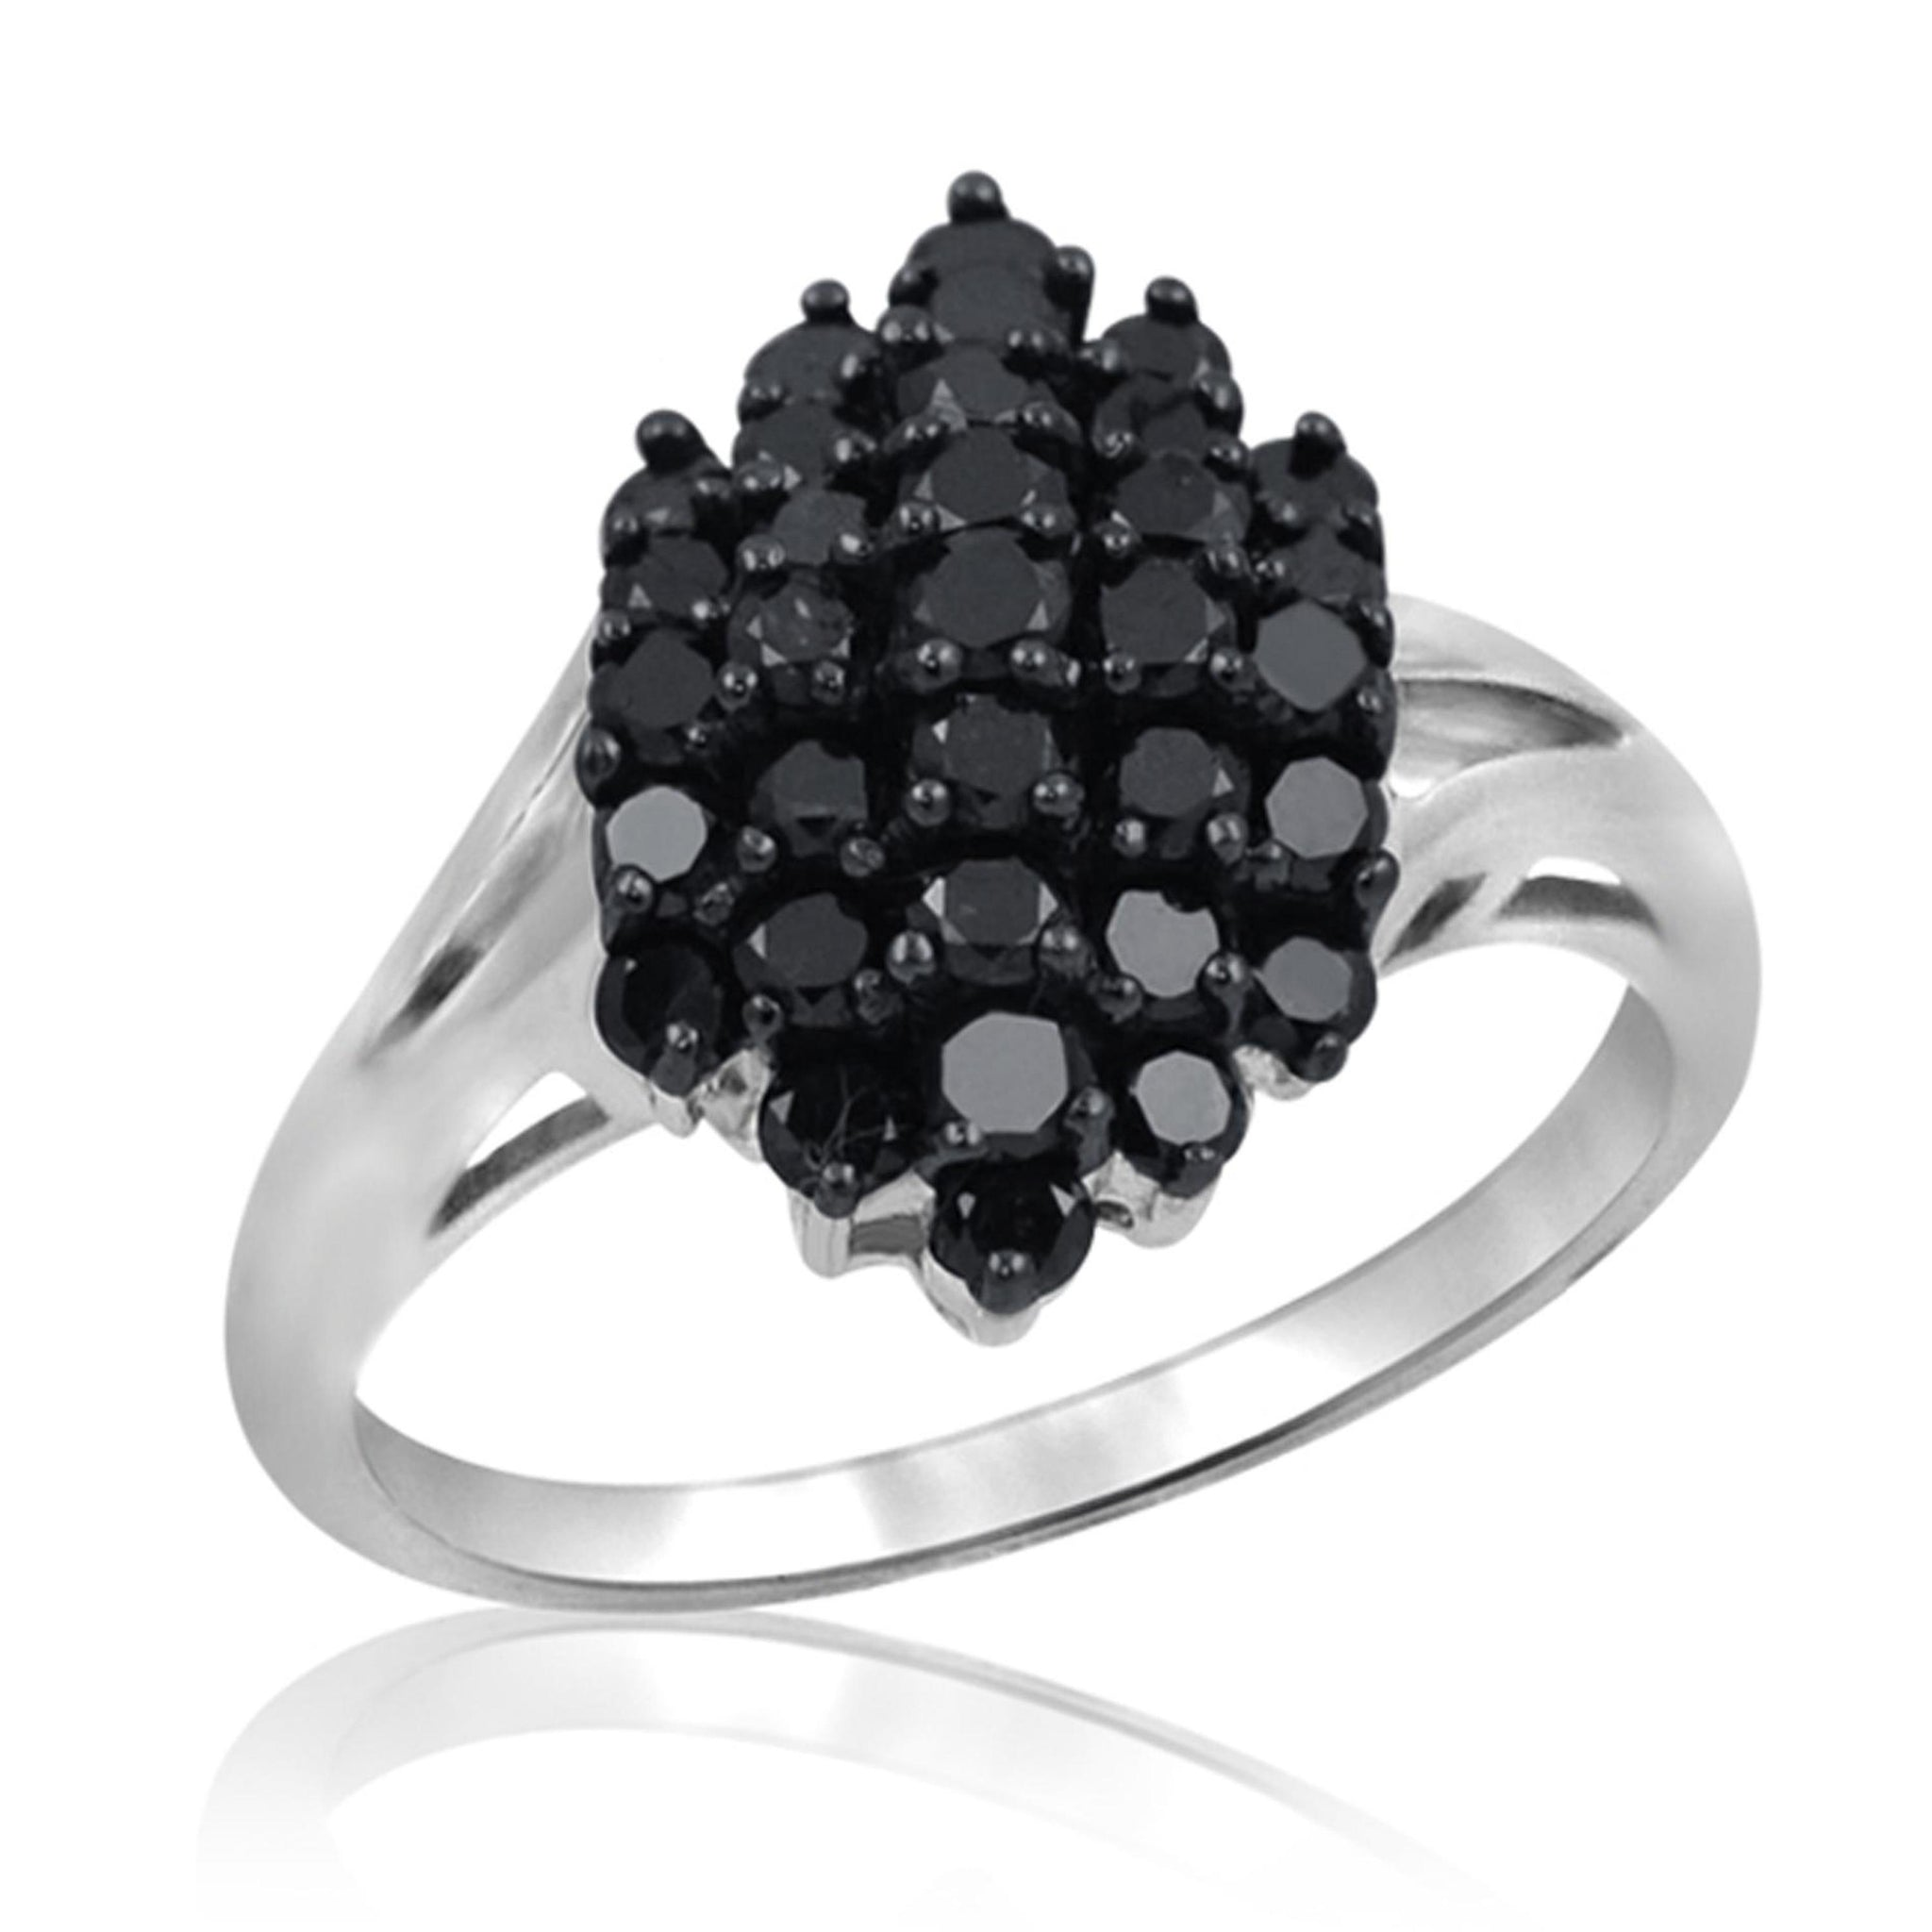 JewelersClub 1 CTW Black Diamond Sterling Silver Ring